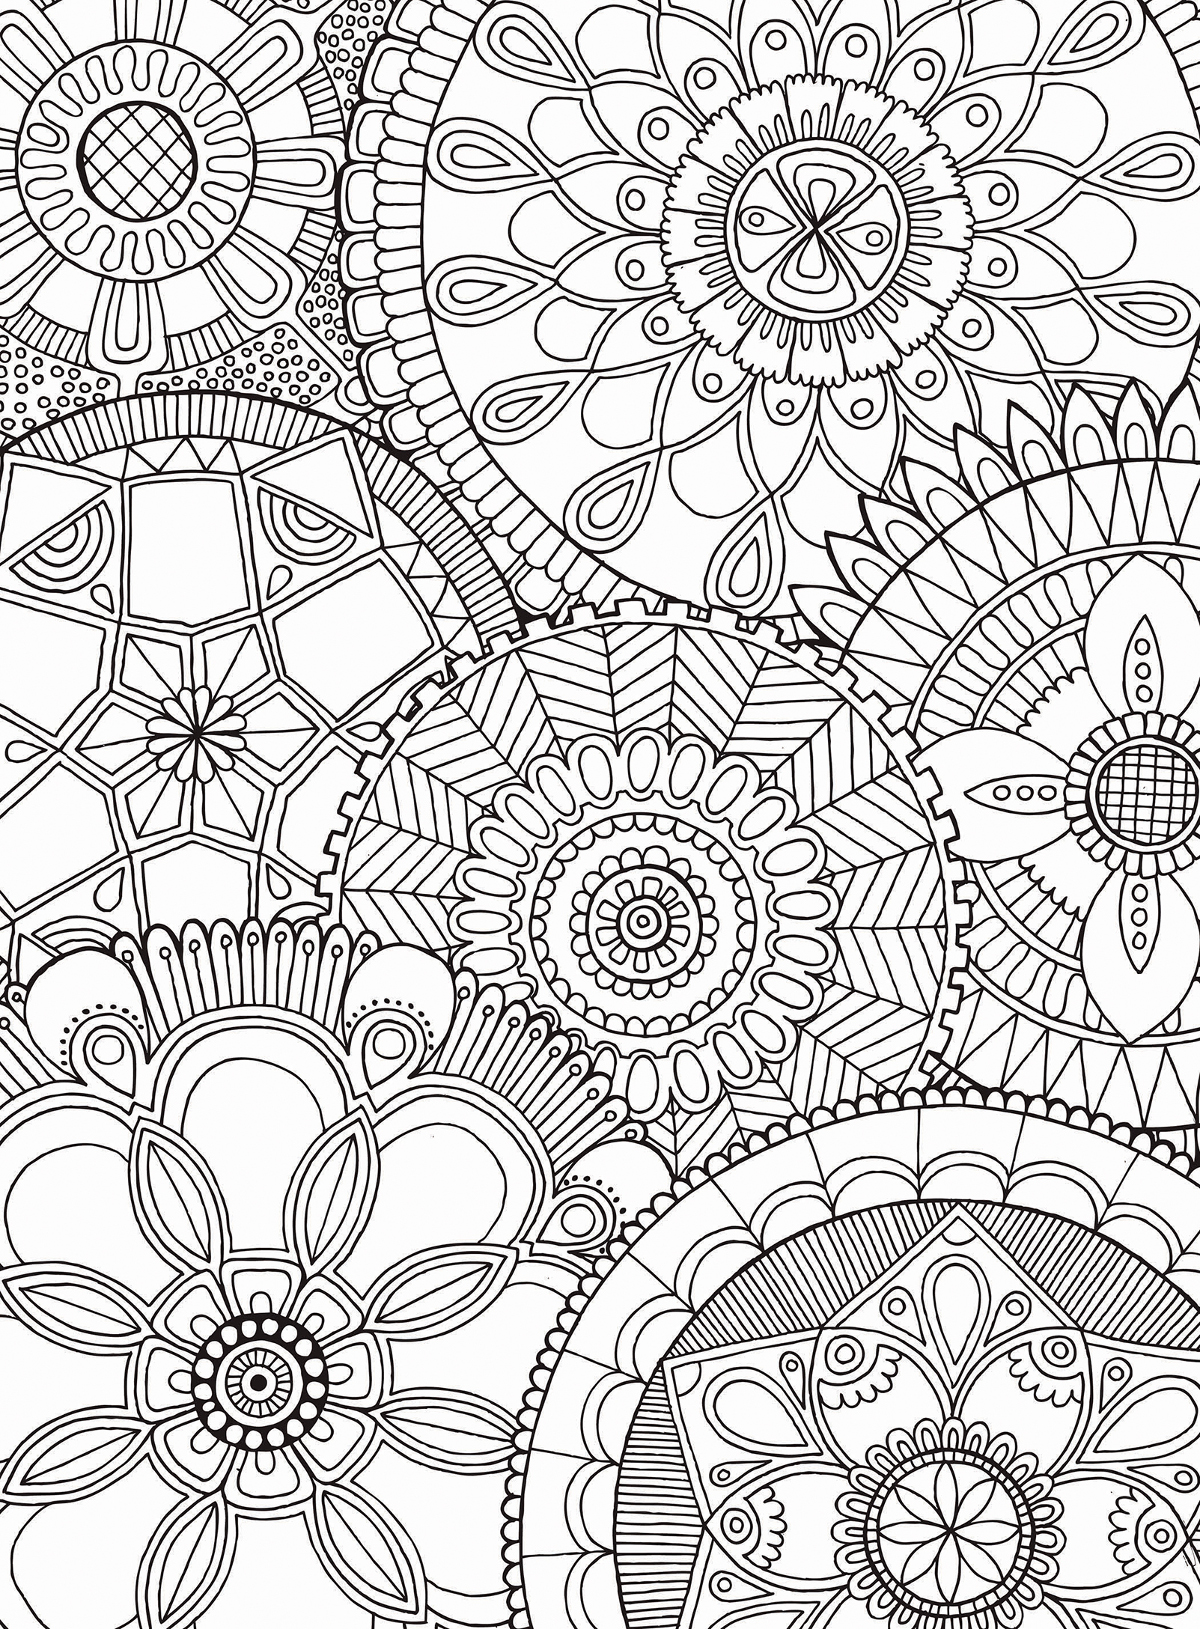 Mandala Collage Jigsaw Puzzle